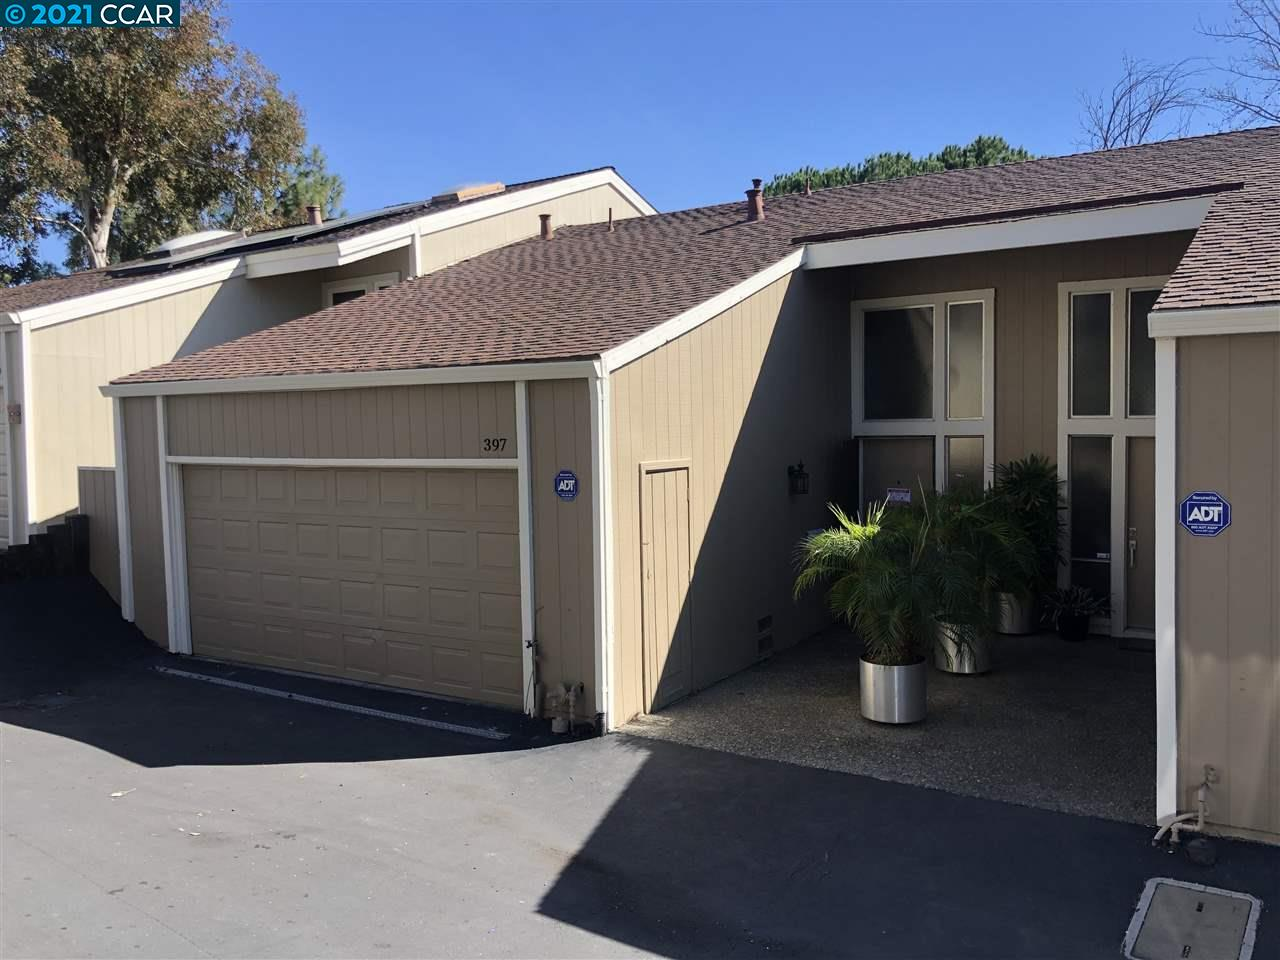 397 Ridgeview Dr, Pleasant Hill, California 94523, 2 Bedrooms Bedrooms, ,2 BathroomsBathrooms,Townhouse,For Sale,397 Ridgeview Dr,2,40939441